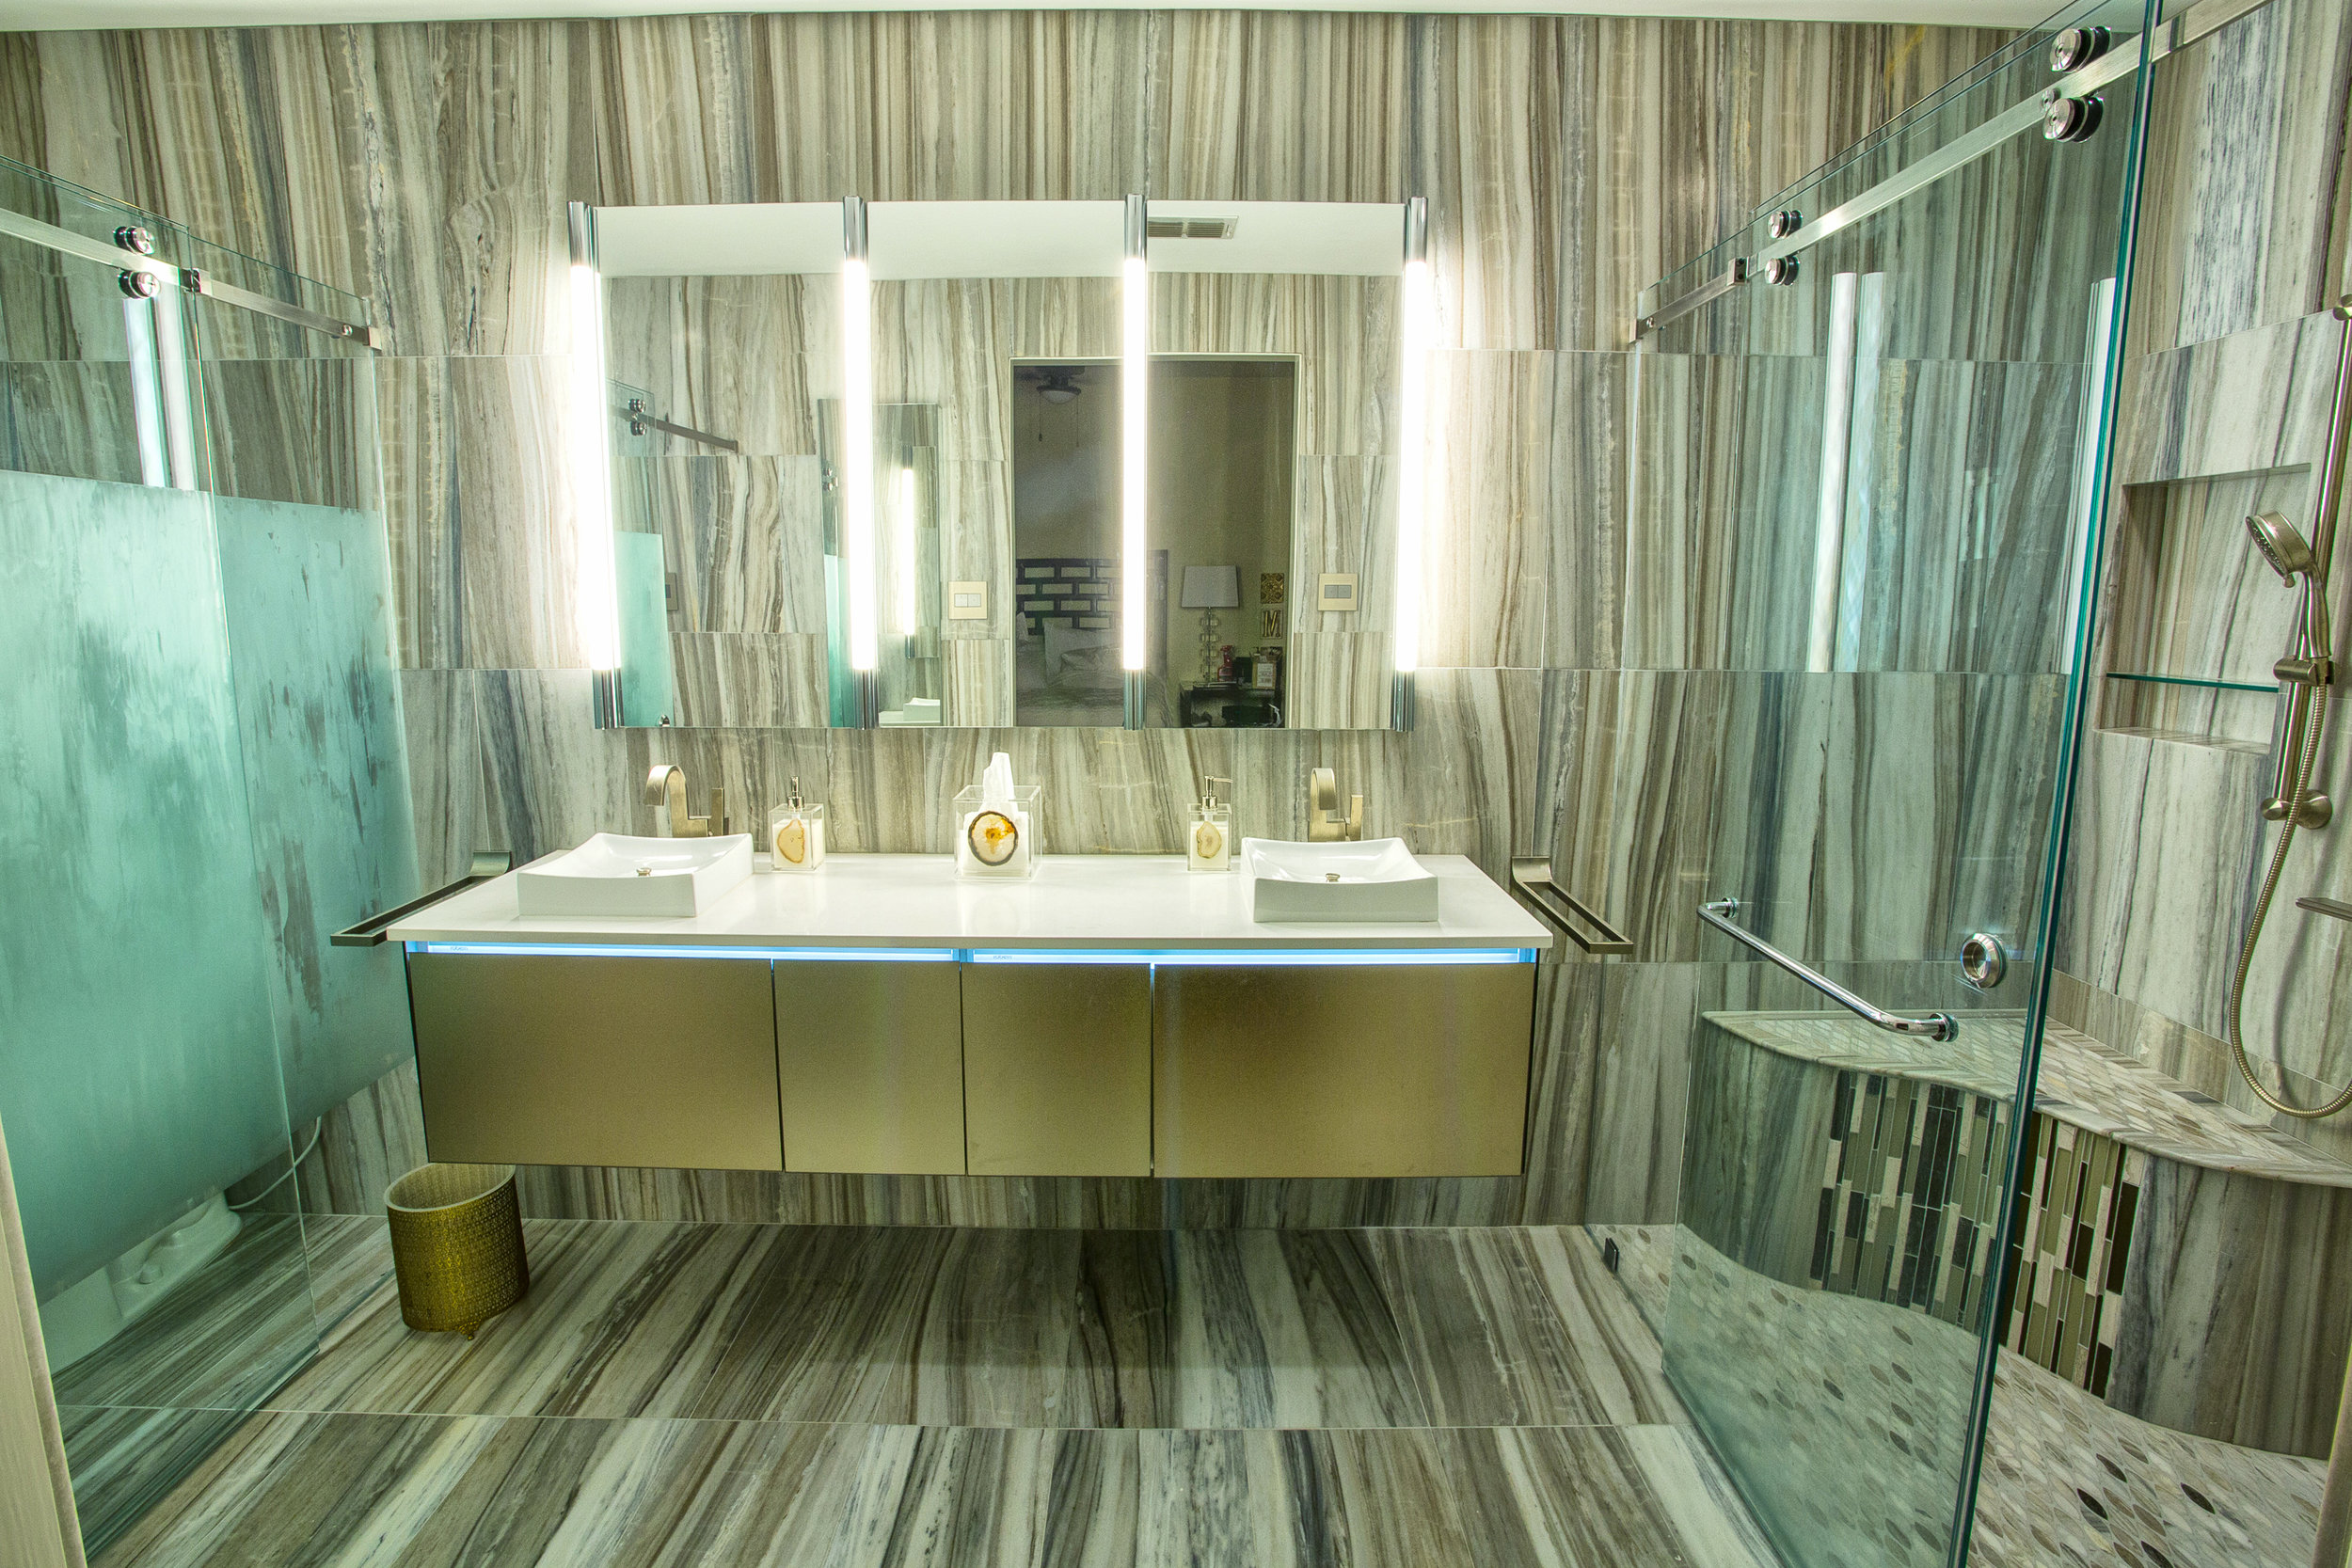 AFTER - Fabulous lighting on either sides of mirrored medicine cabinets in our redesigned bathroom.